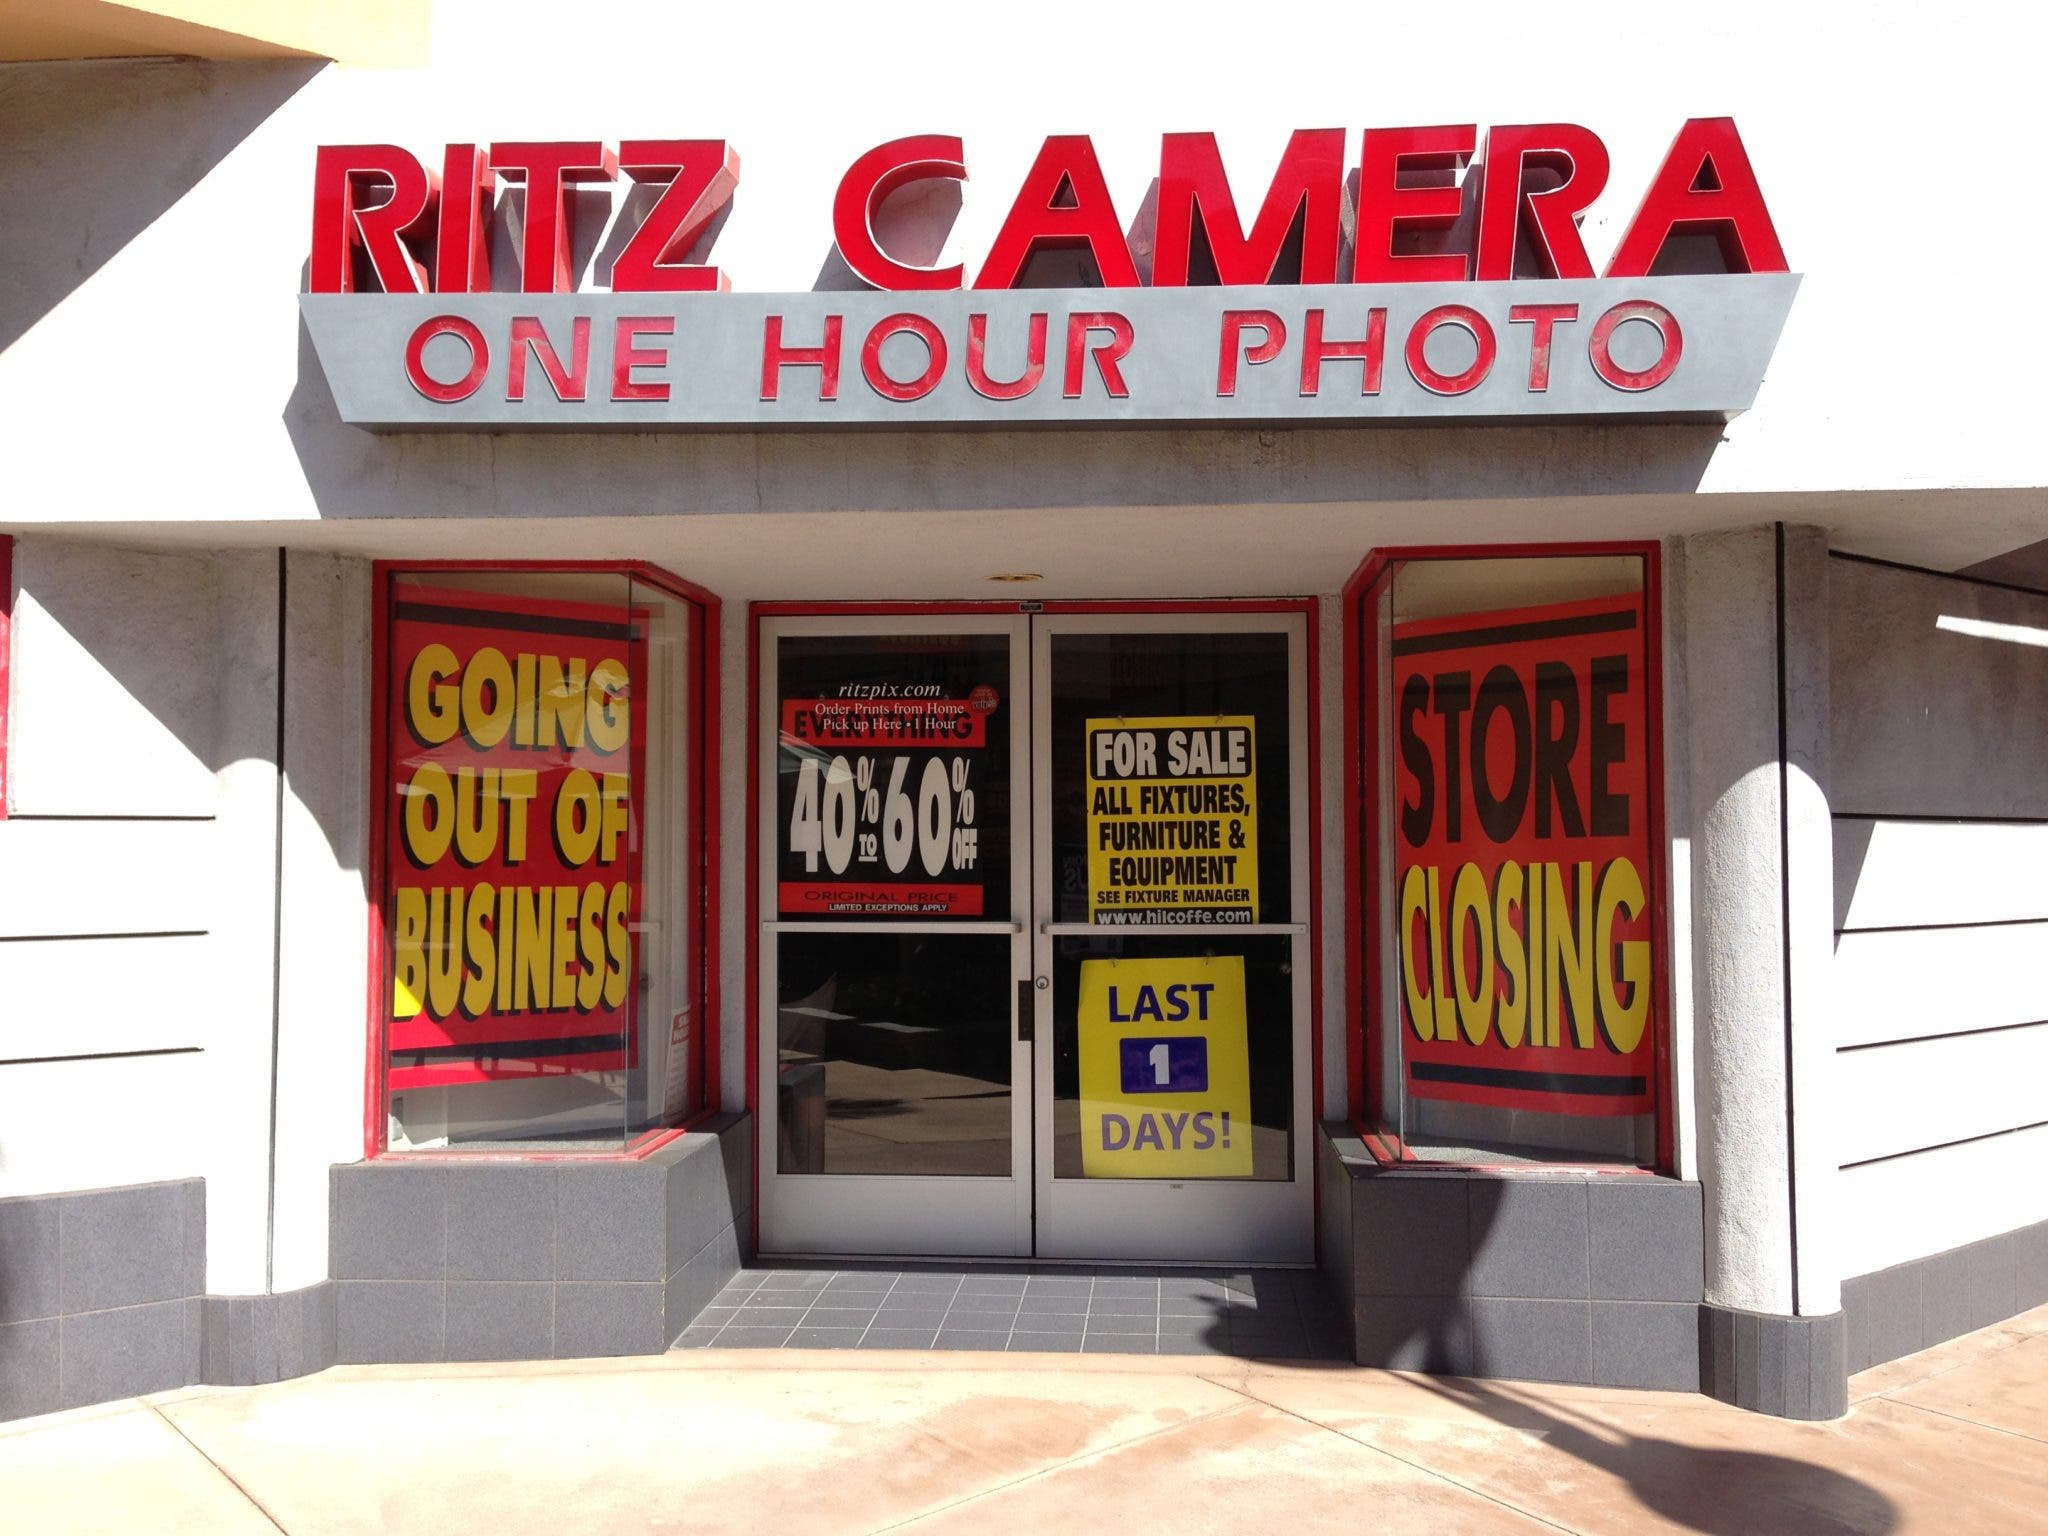 We list all the best Ritz Camera promo codes and online coupons on this page for discounts on digital cameras, camcorders, lenses, lighting, pro audio/video gear, and accessories. Depending on the RitzCamera promo code, you may get an instant discount, a free gift, or some other special offer.